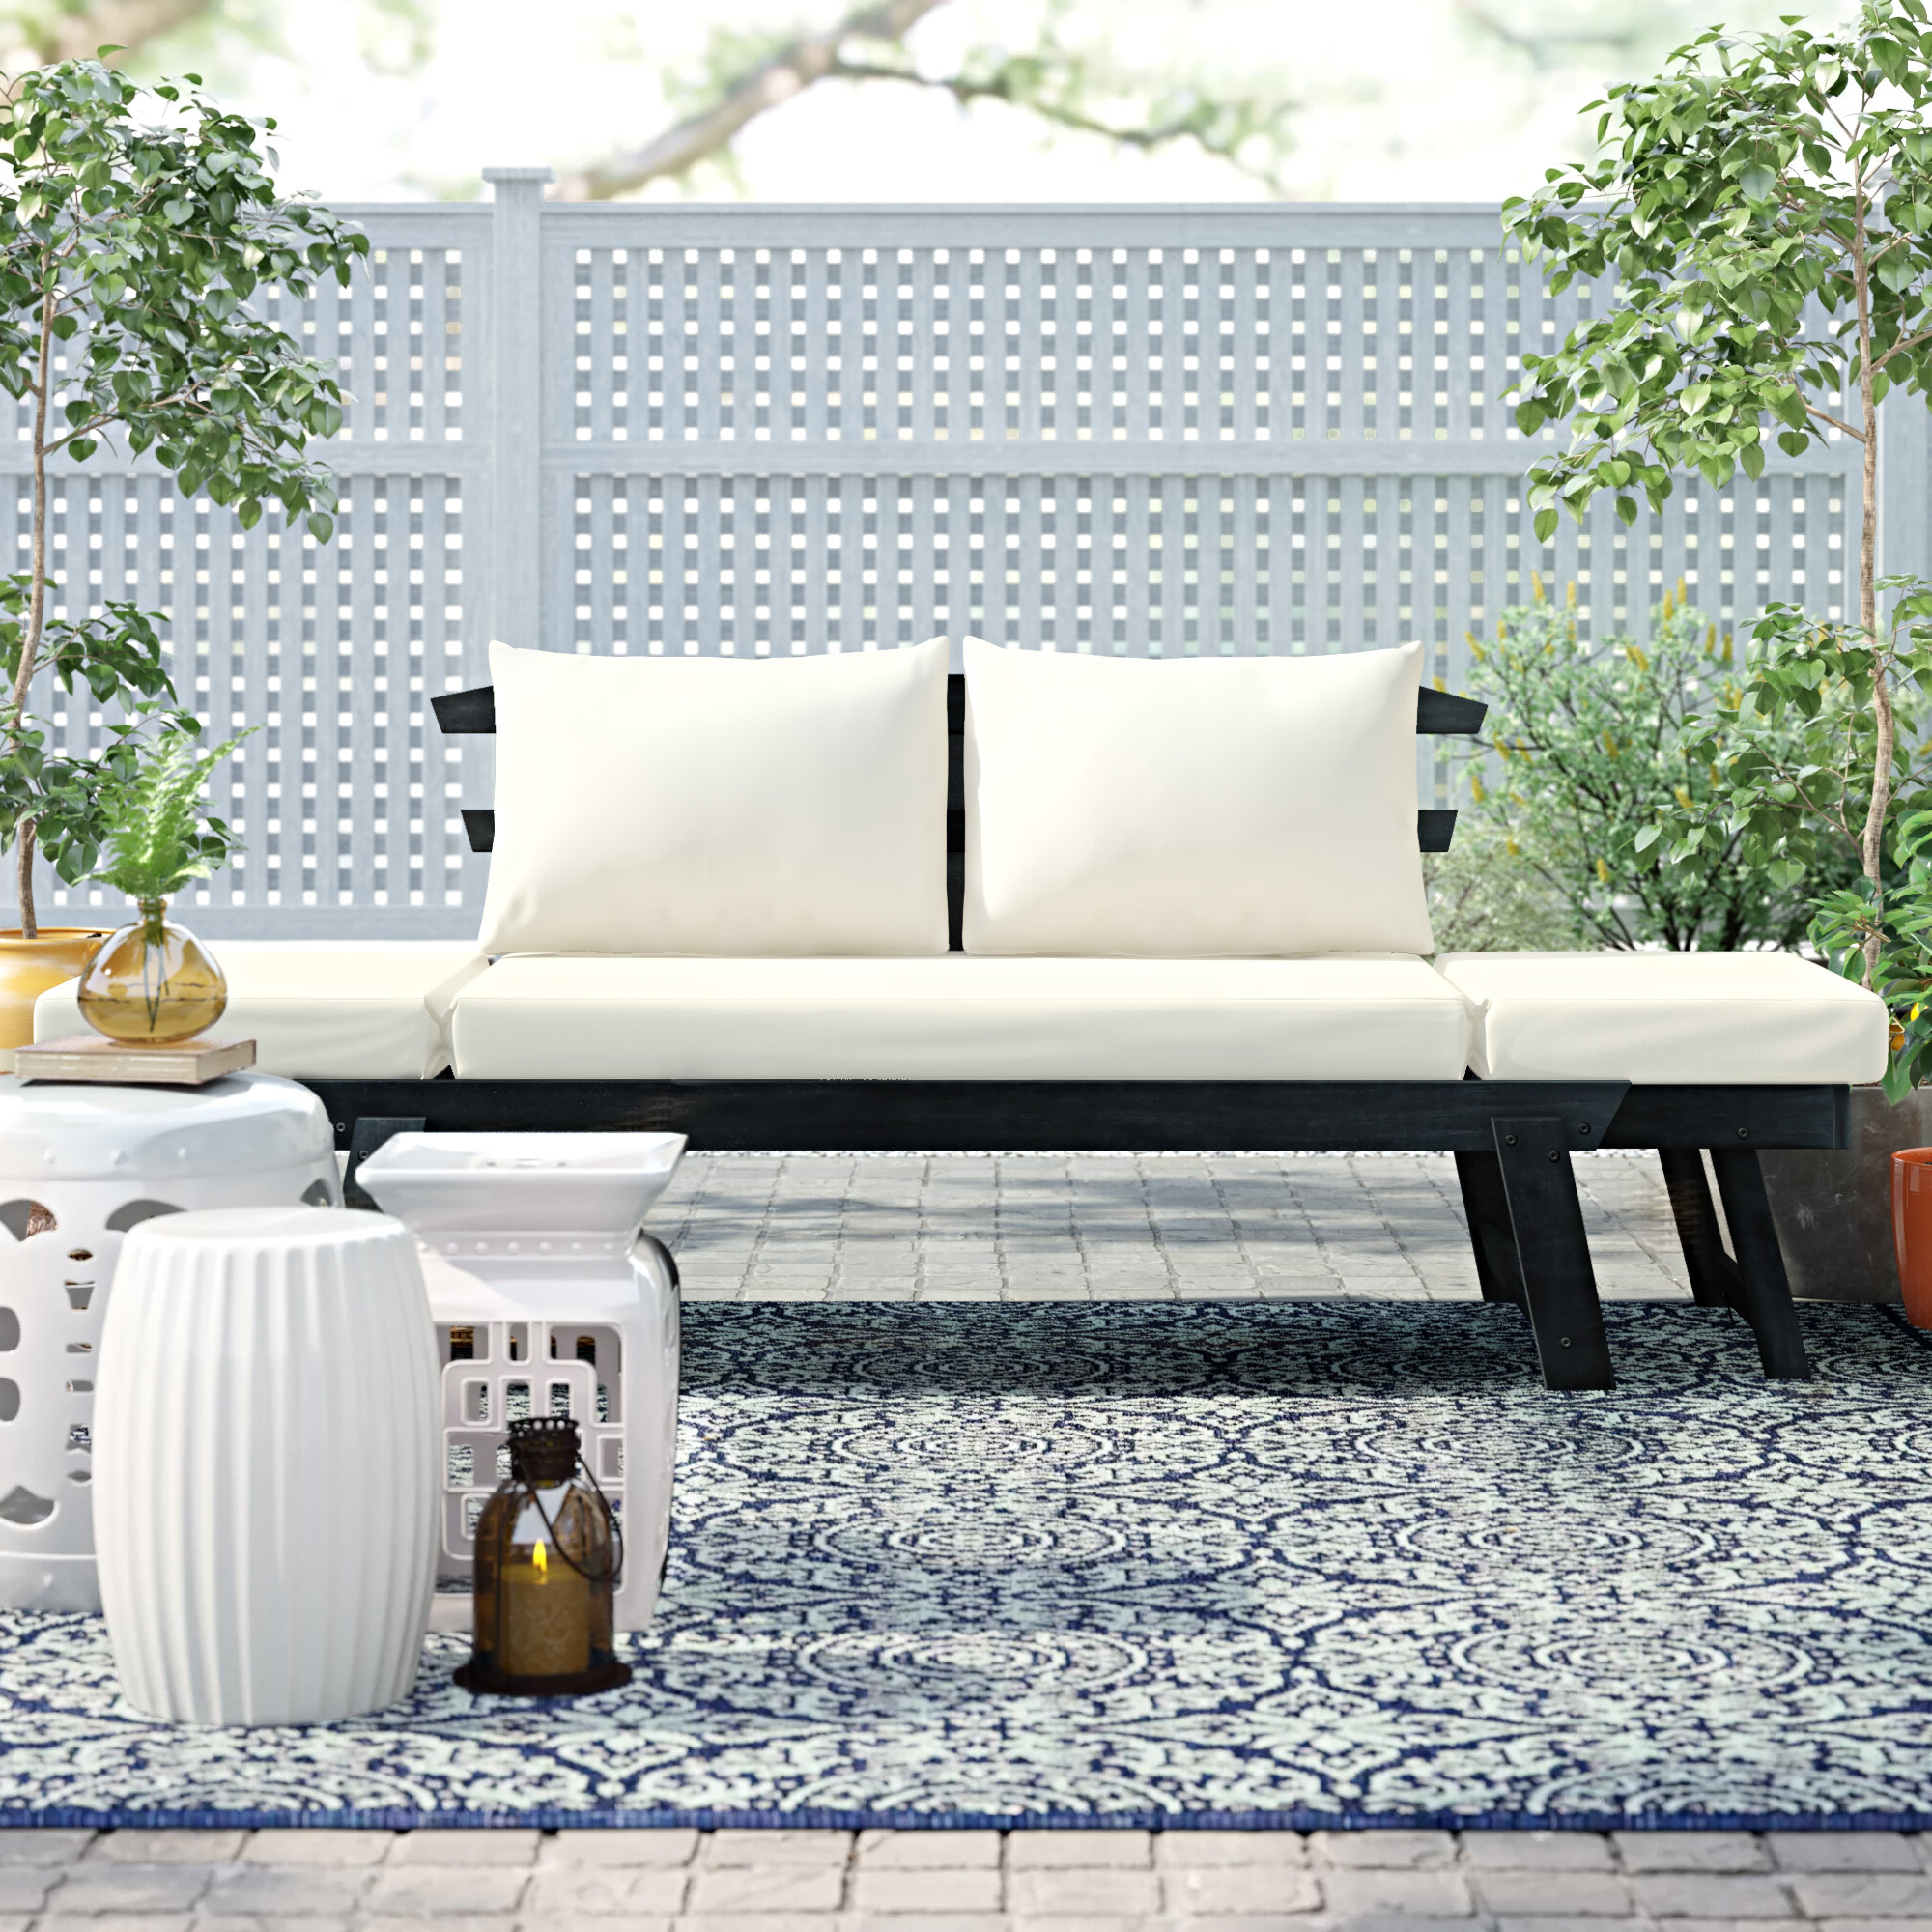 Grosvenor Bamboo Patio Daybeds With Cushions Intended For Favorite Beal Patio Daybed With Cushions (View 5 of 20)